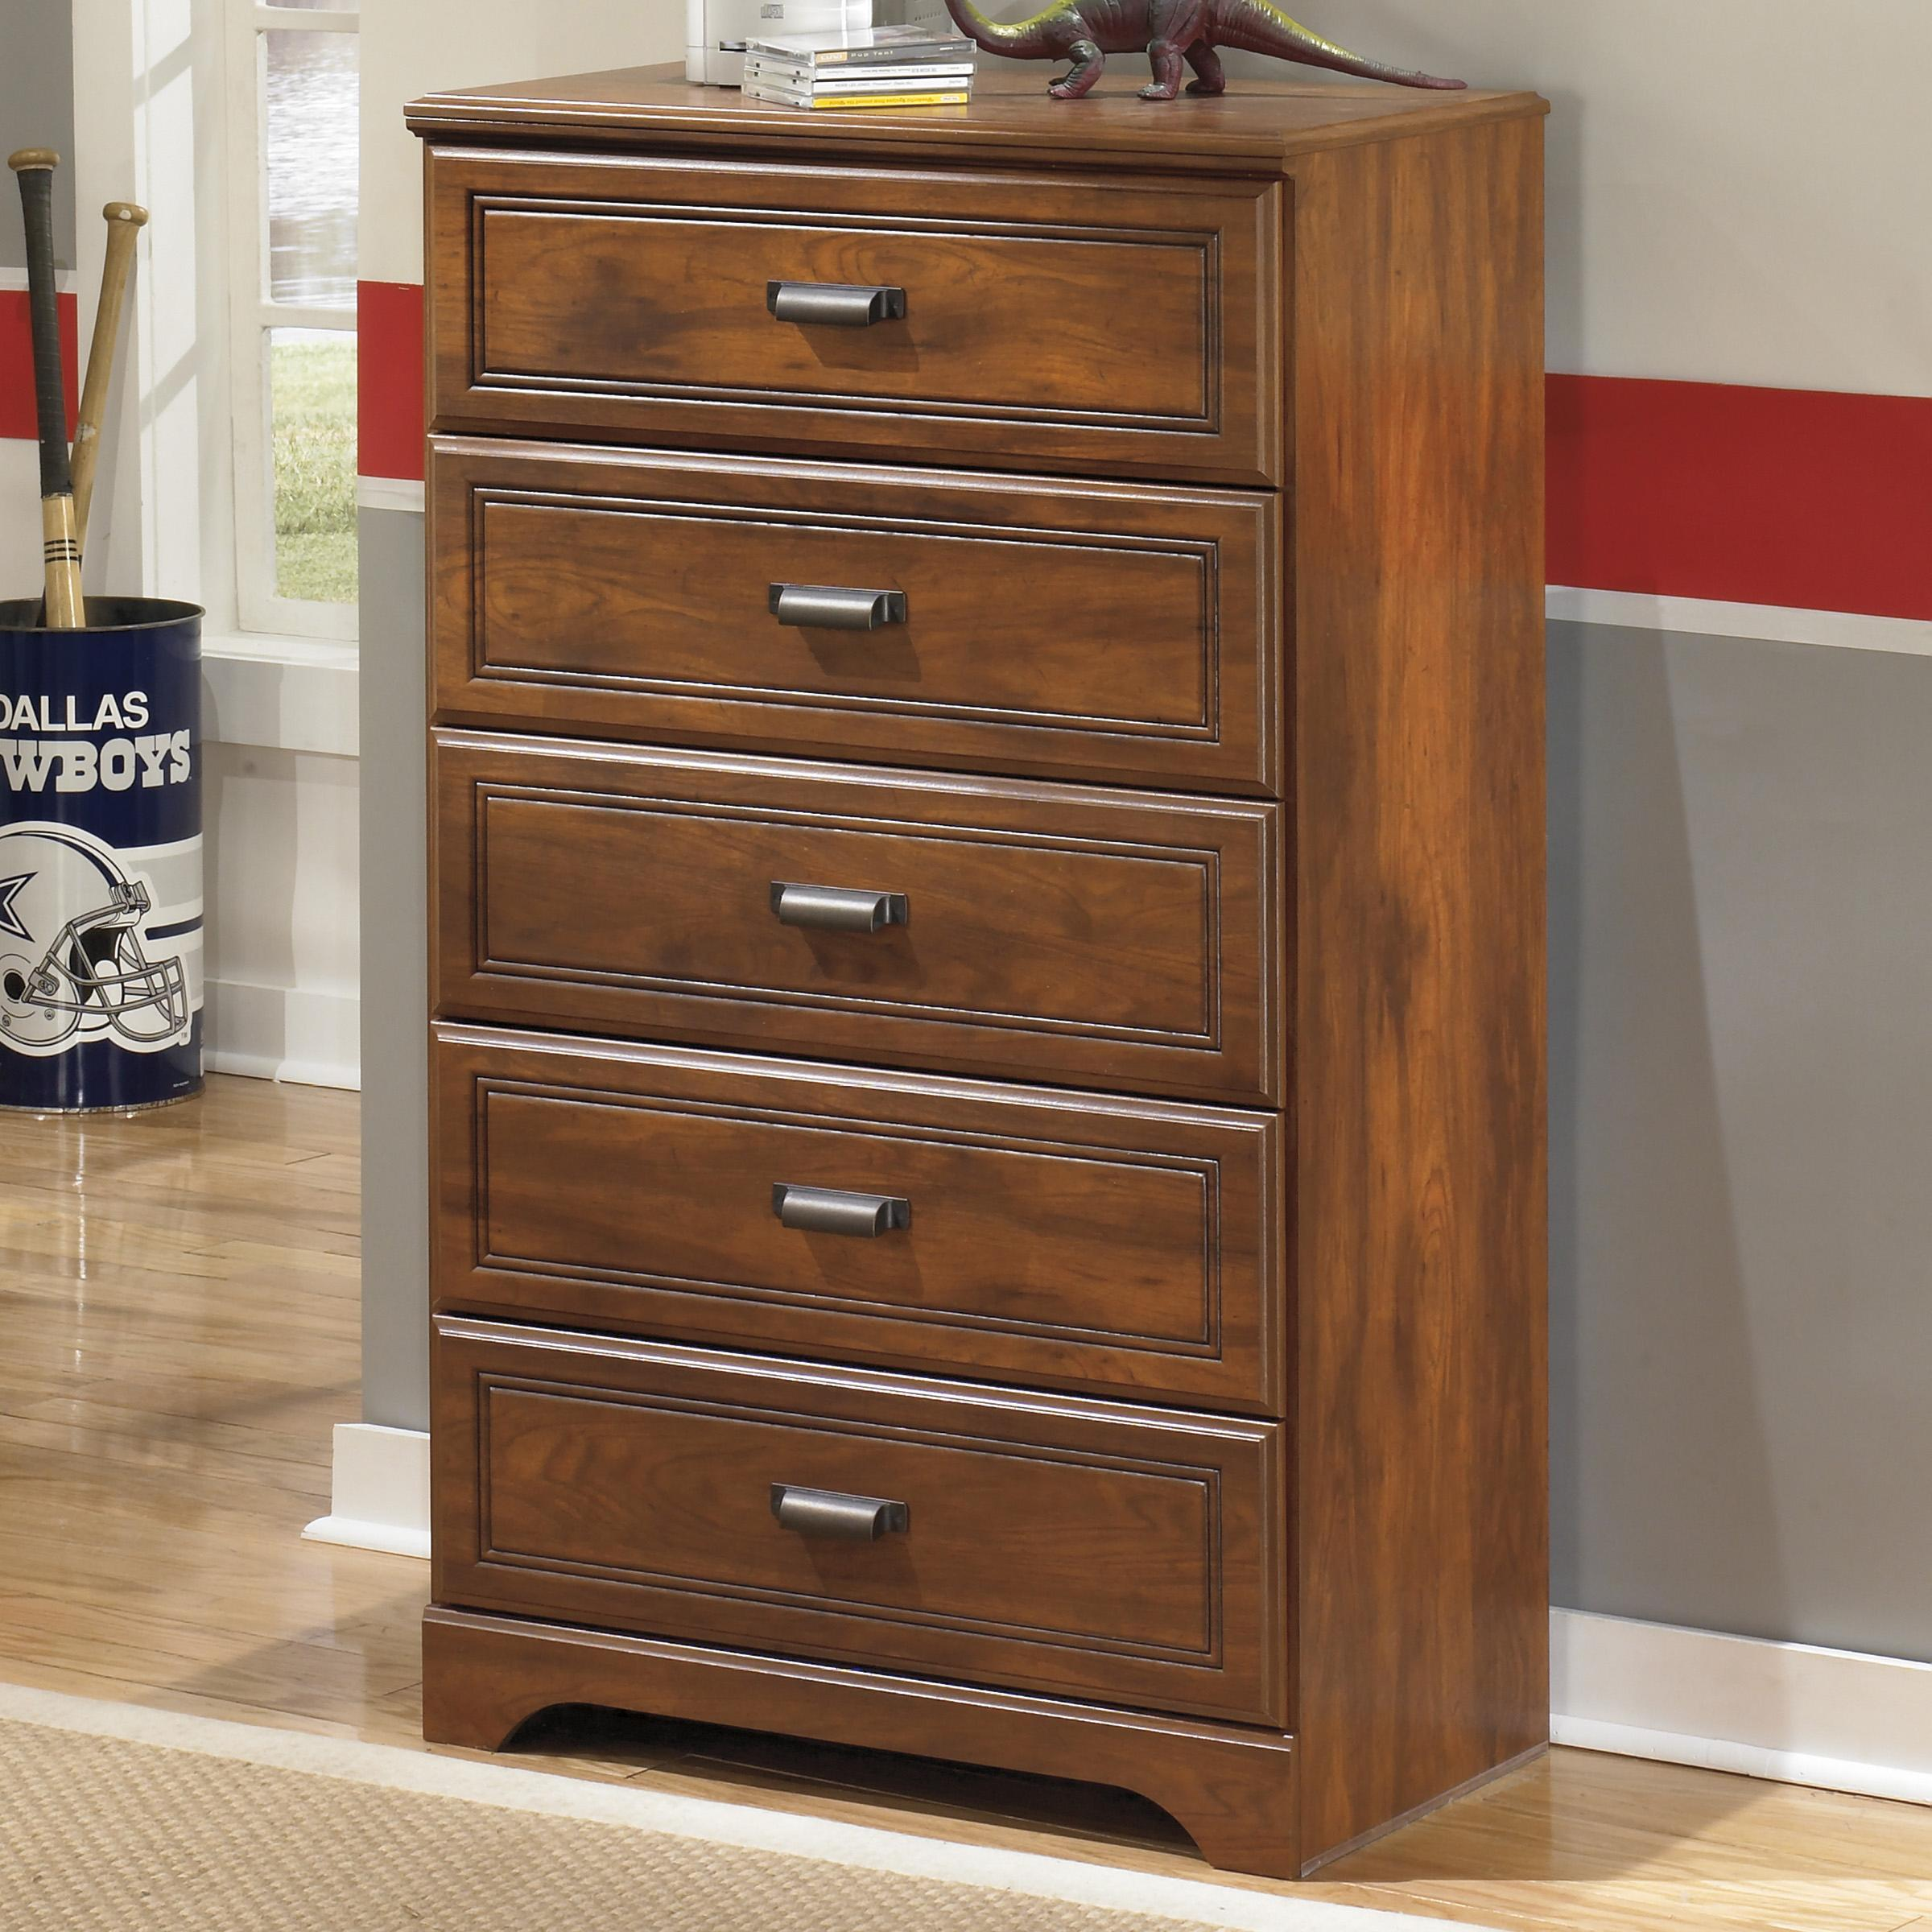 Signature Design by Ashley Barchan Five Drawer Chest - Item Number: B228-46